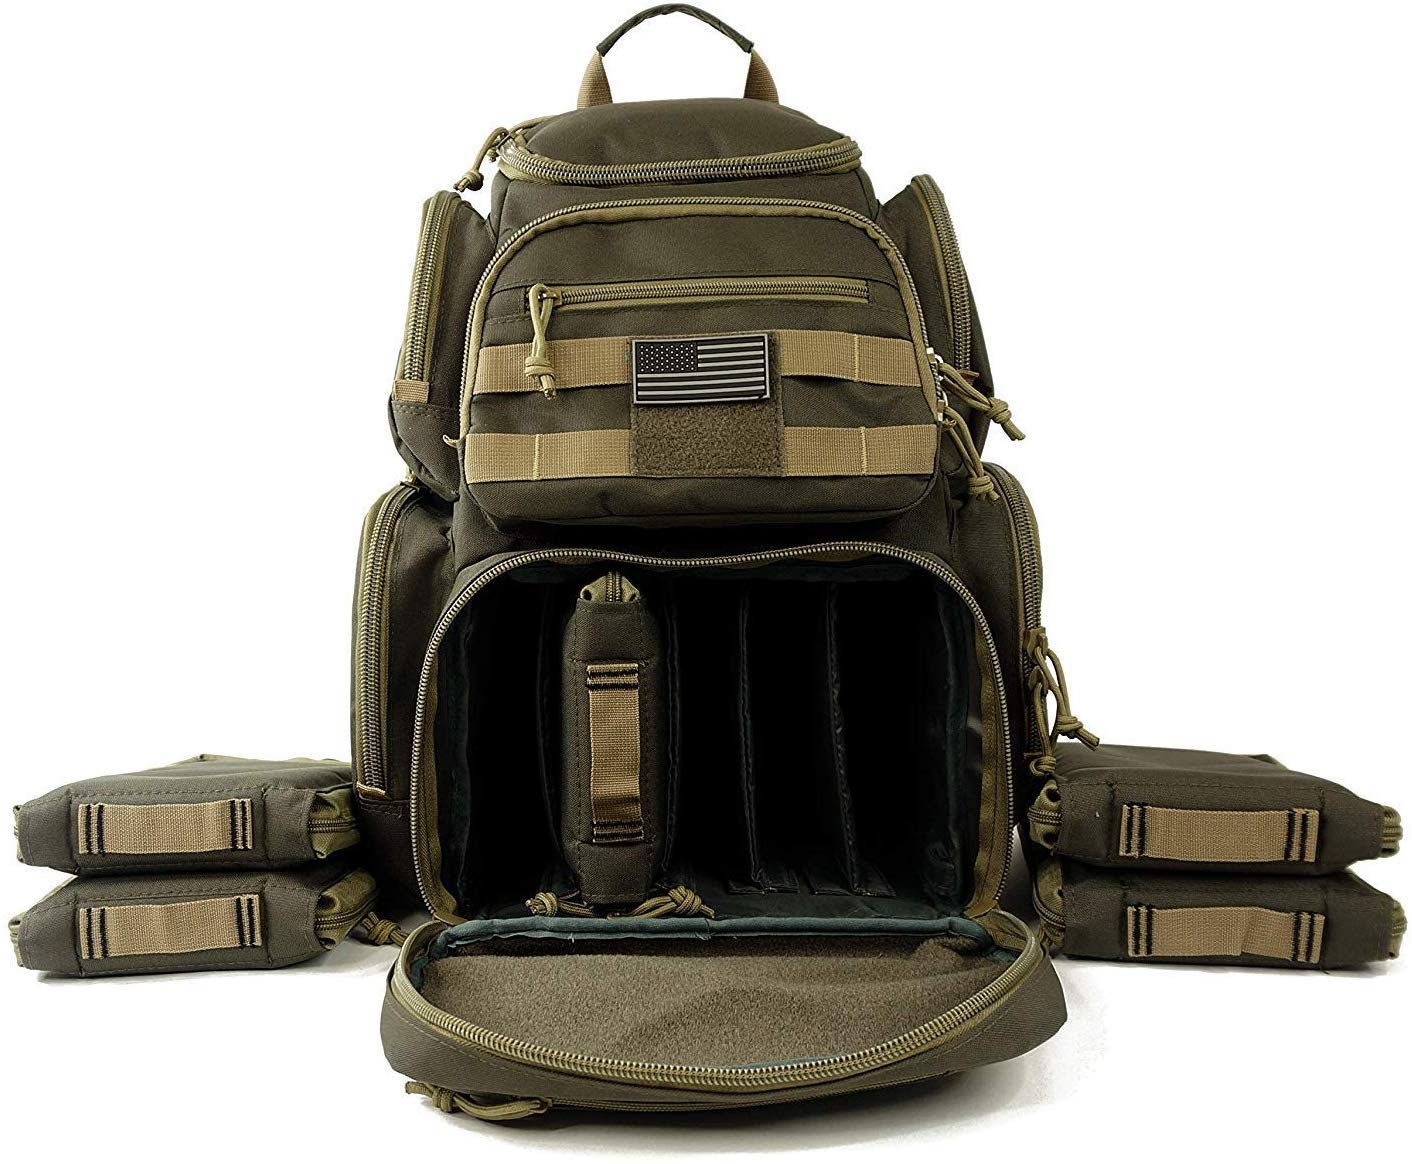 Tactical Range Backpack Military Gear Carries 5 Handguns Multi-Functional Ammo Pouches & Magazine Pockets for Pistols Quality Heavy Duty Materials Perfect for Shooting & Hunting Khaki by NiceAndGreat